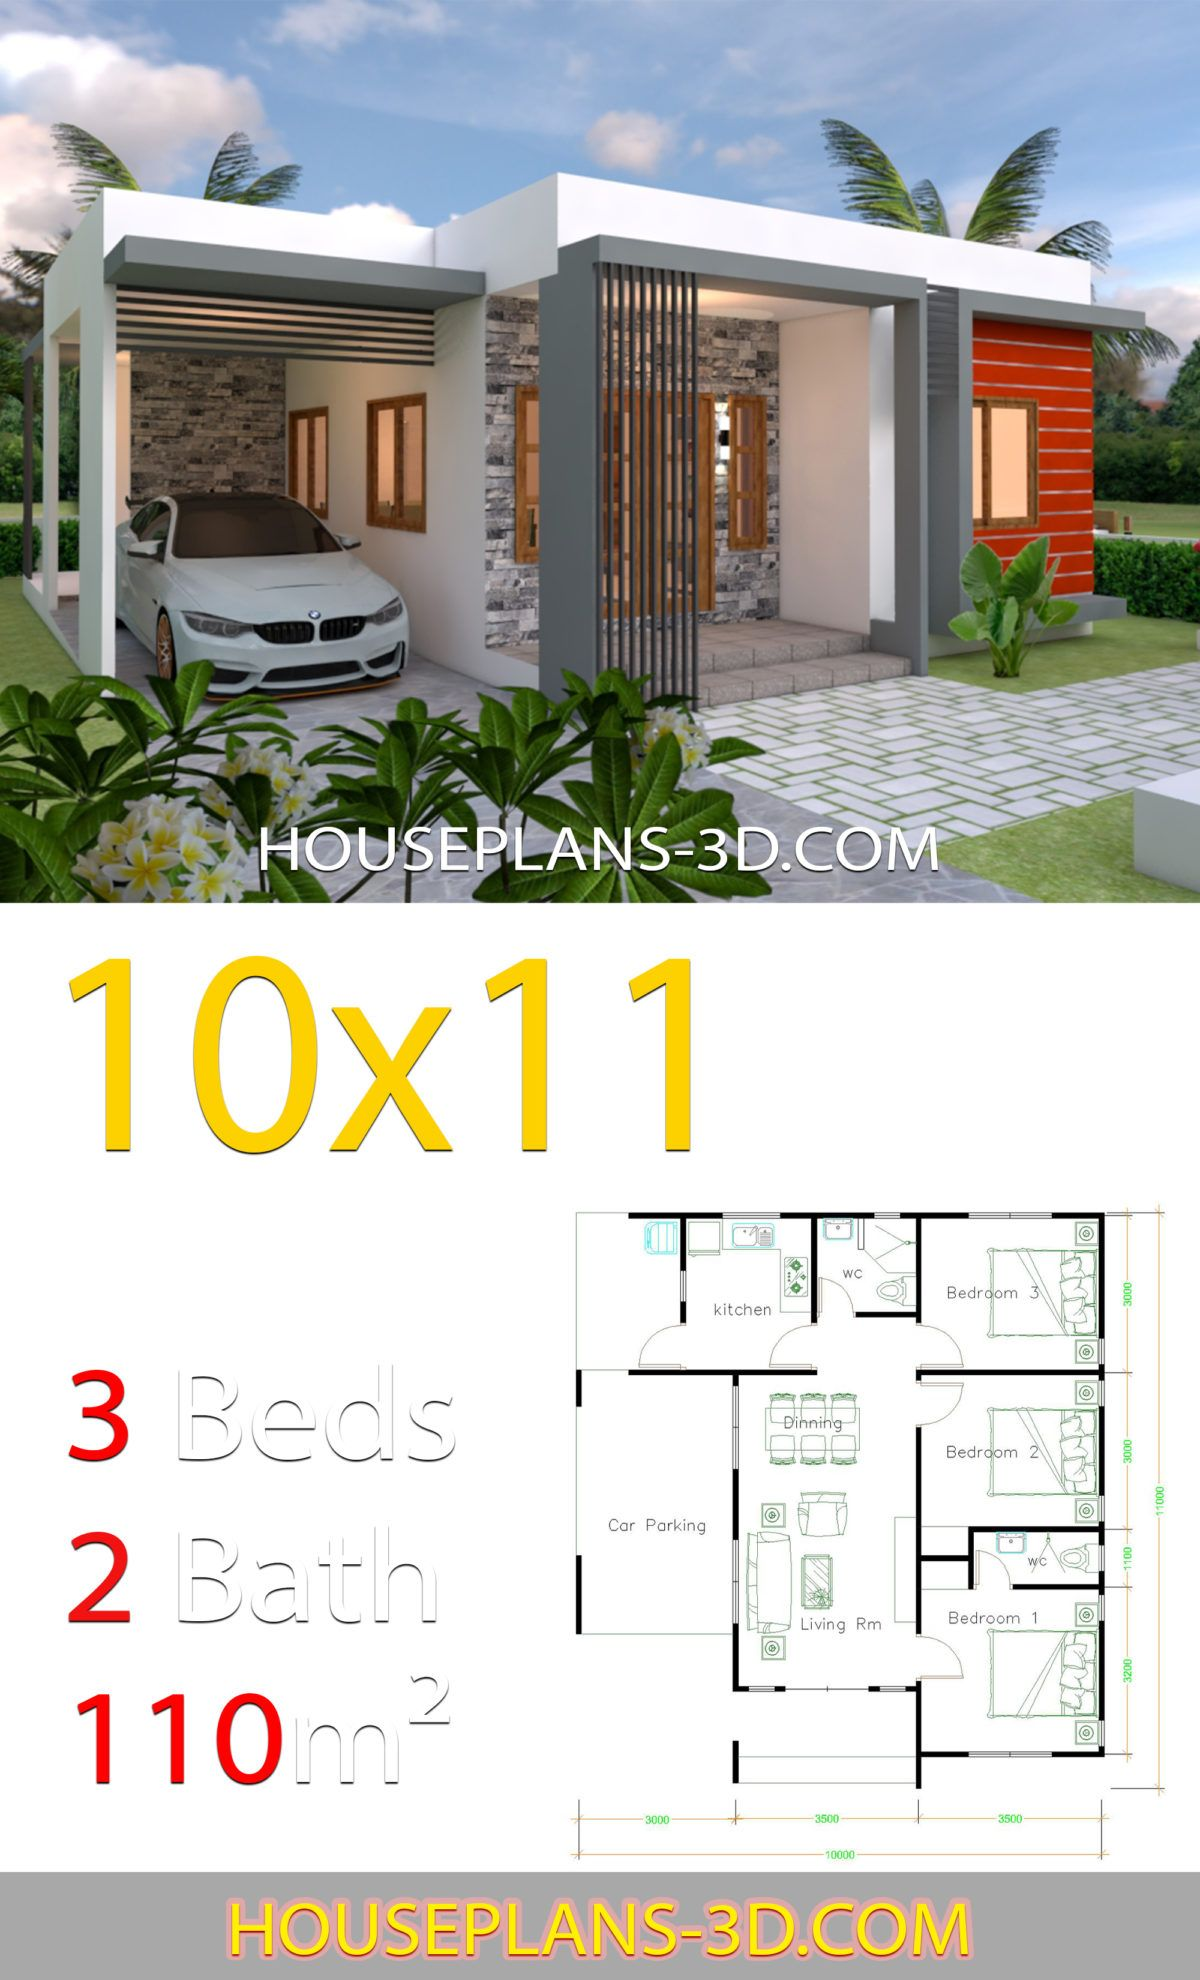 House Design 10x11 With 3 Bedrooms Terrace Roof House Plans 3d In 2020 House Plans Modern Bungalow House House Plan Gallery